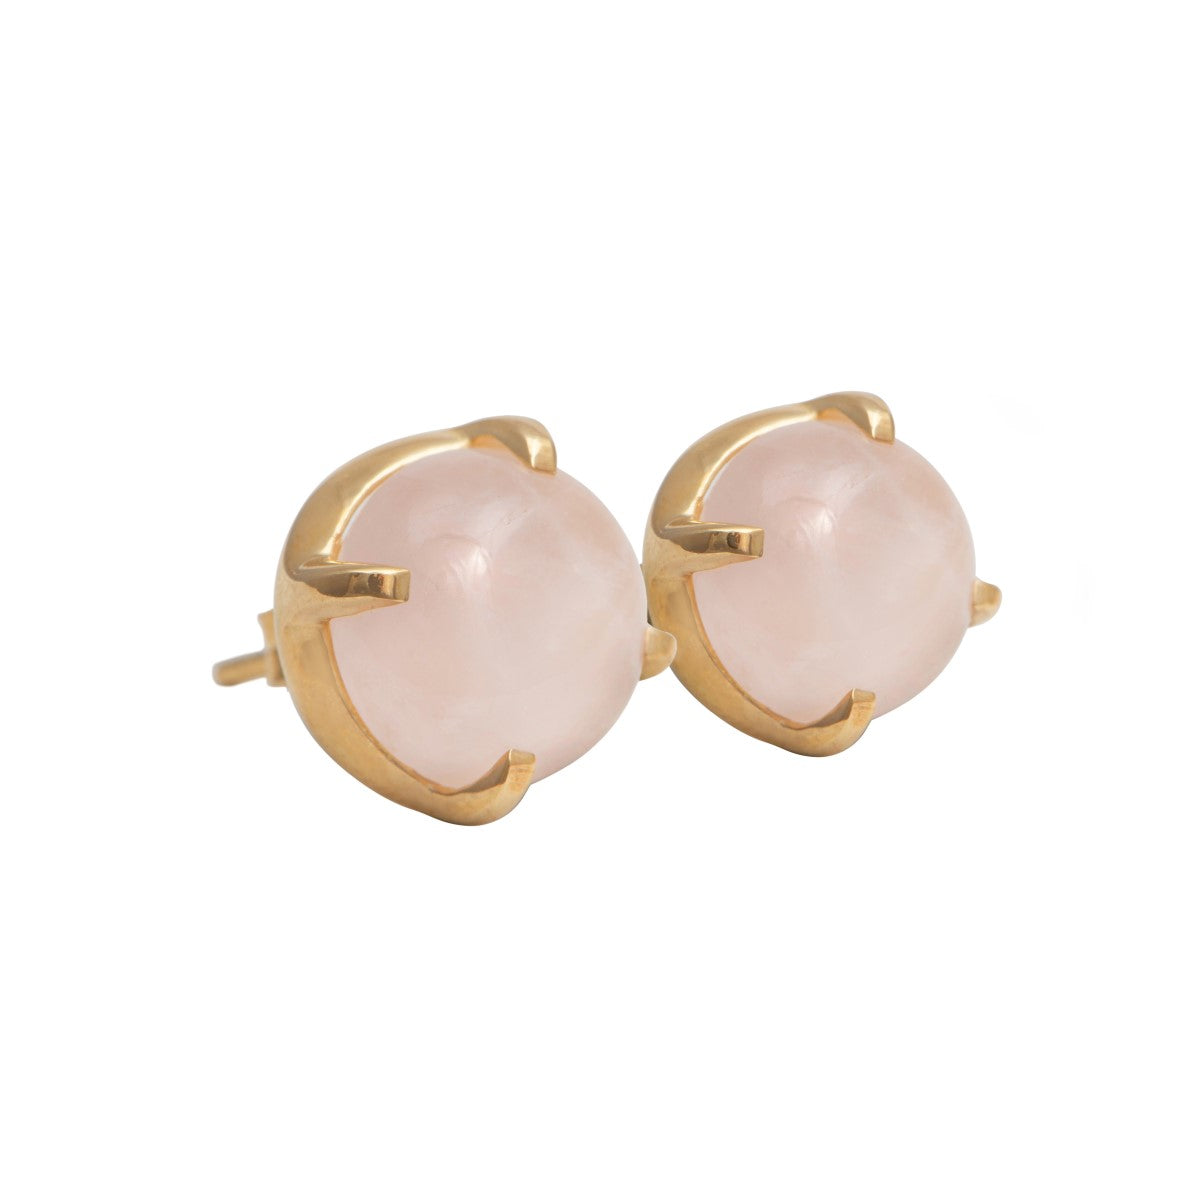 Round Cabochon Rose Quartz Stud Earrings in Gold Plated Sterling Silver